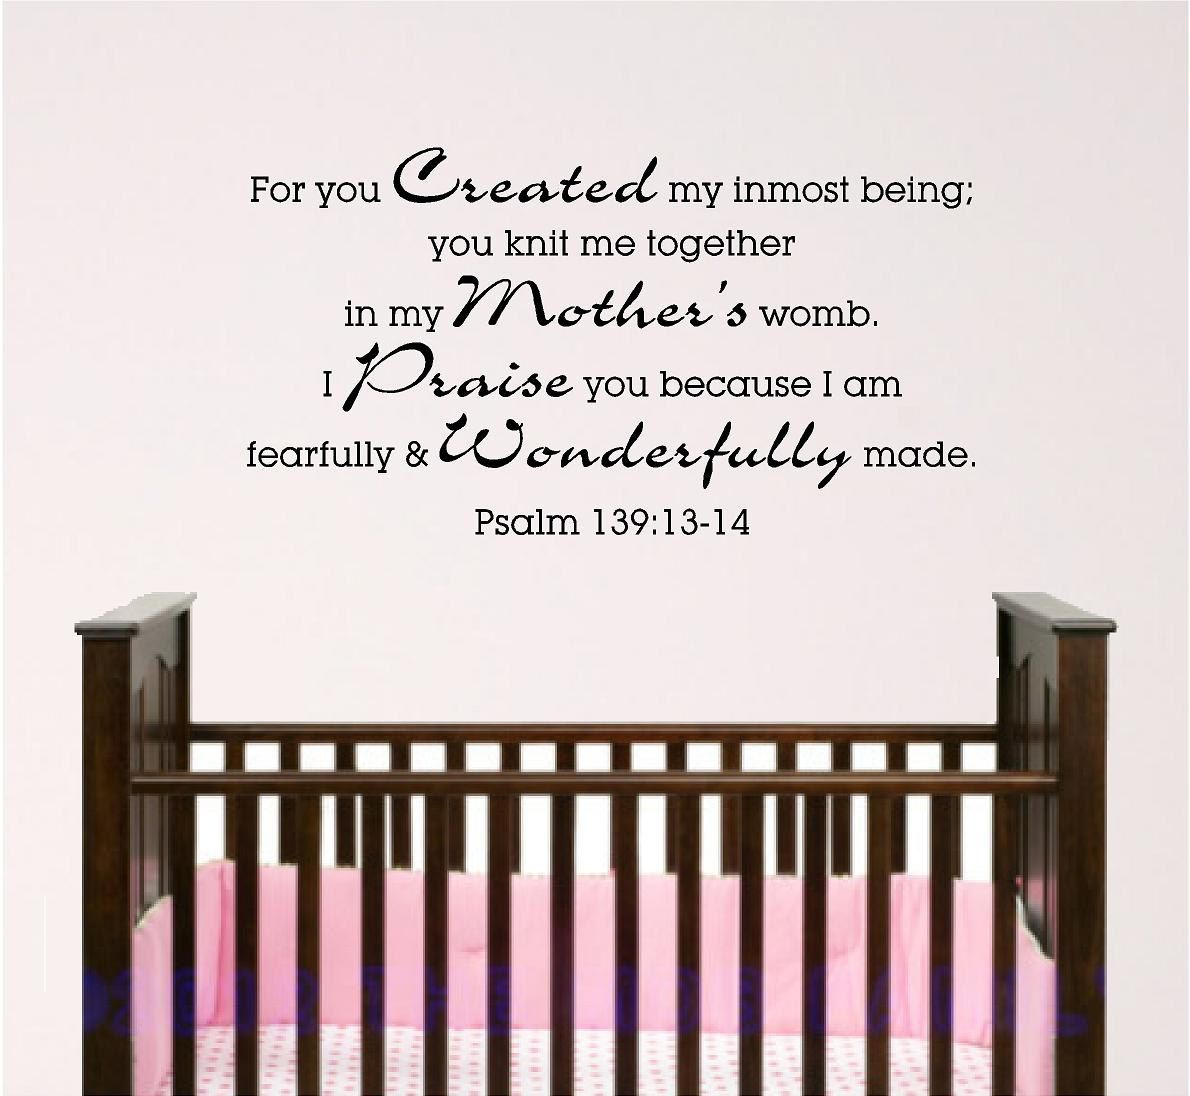 Nursery bible verse wall art psalm 139 4ft 2900 via etsy nursery bible verse wall art psalm 139 4ft 2900 via etsy amipublicfo Gallery